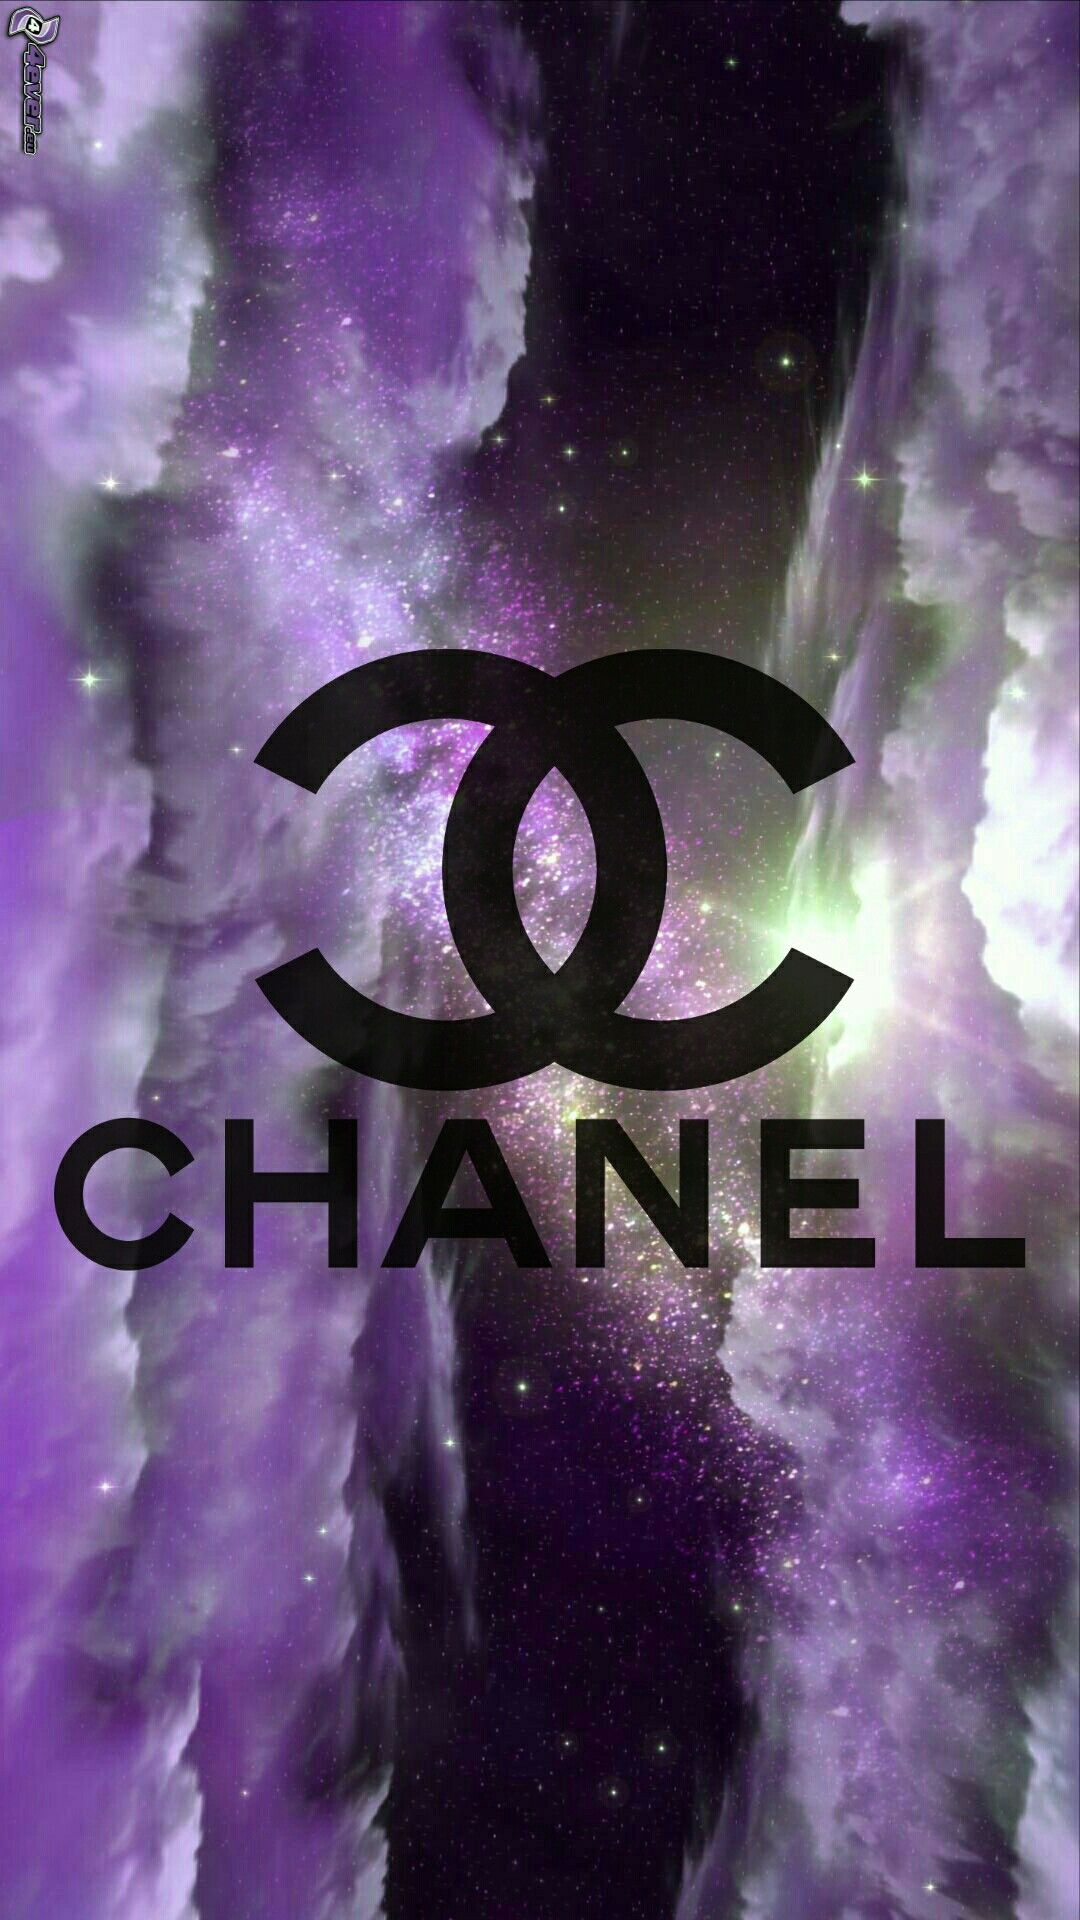 Pin By Pipaonly On A Chanel All Chanel Wallpapers Fashion